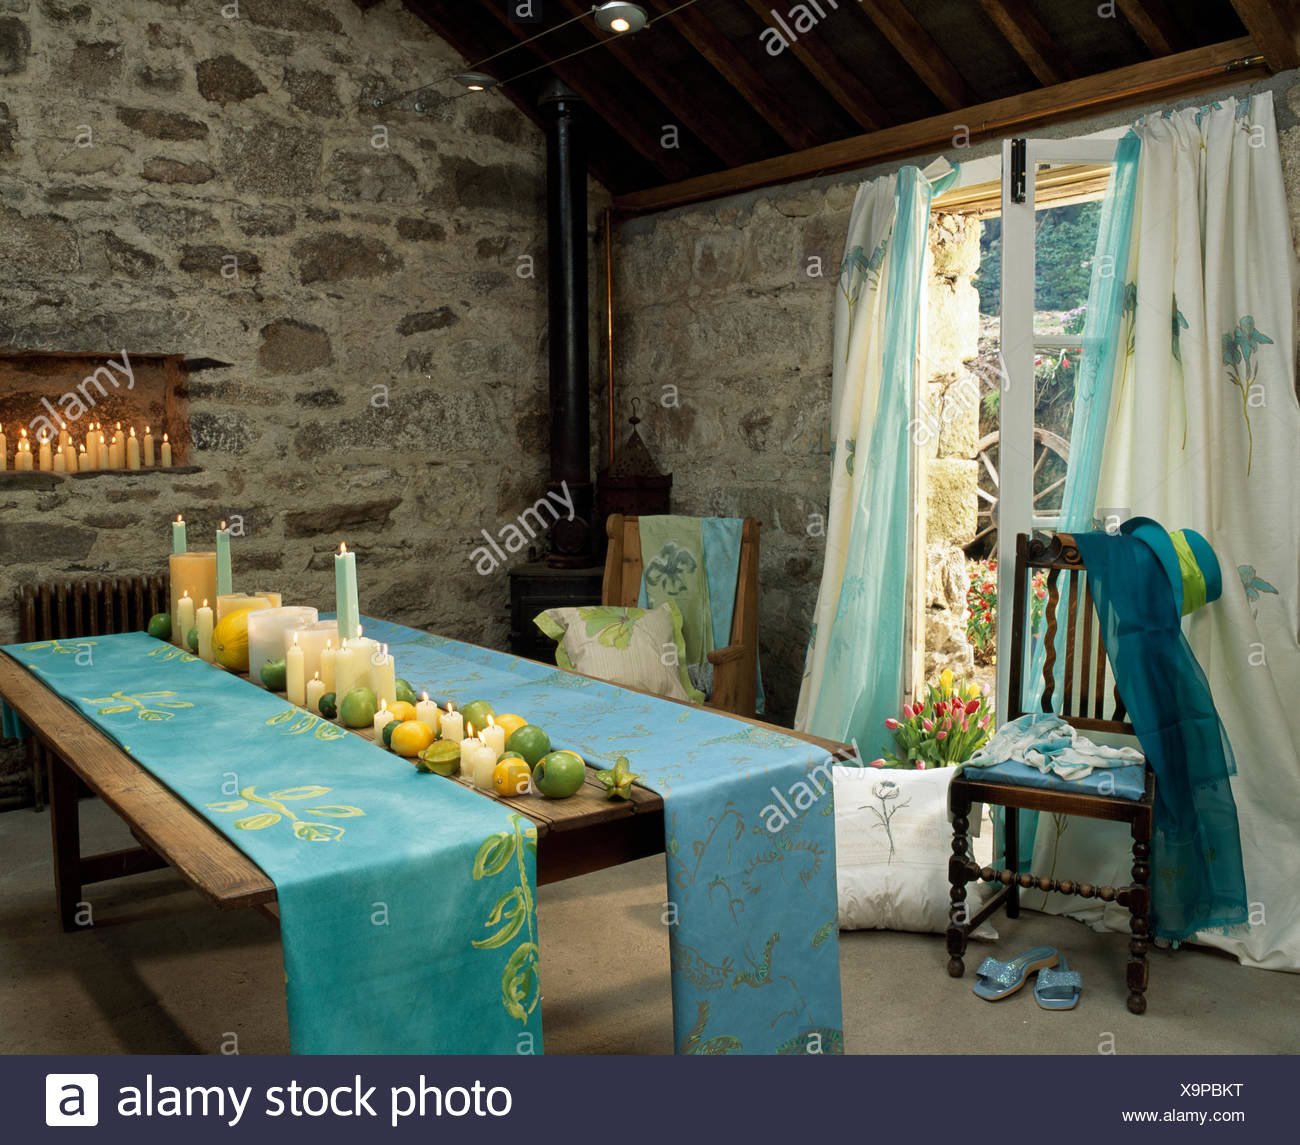 Hand Painted Table Runners On Dining Table With Co Ordinating Curtains On  The Window In A Stone Barn